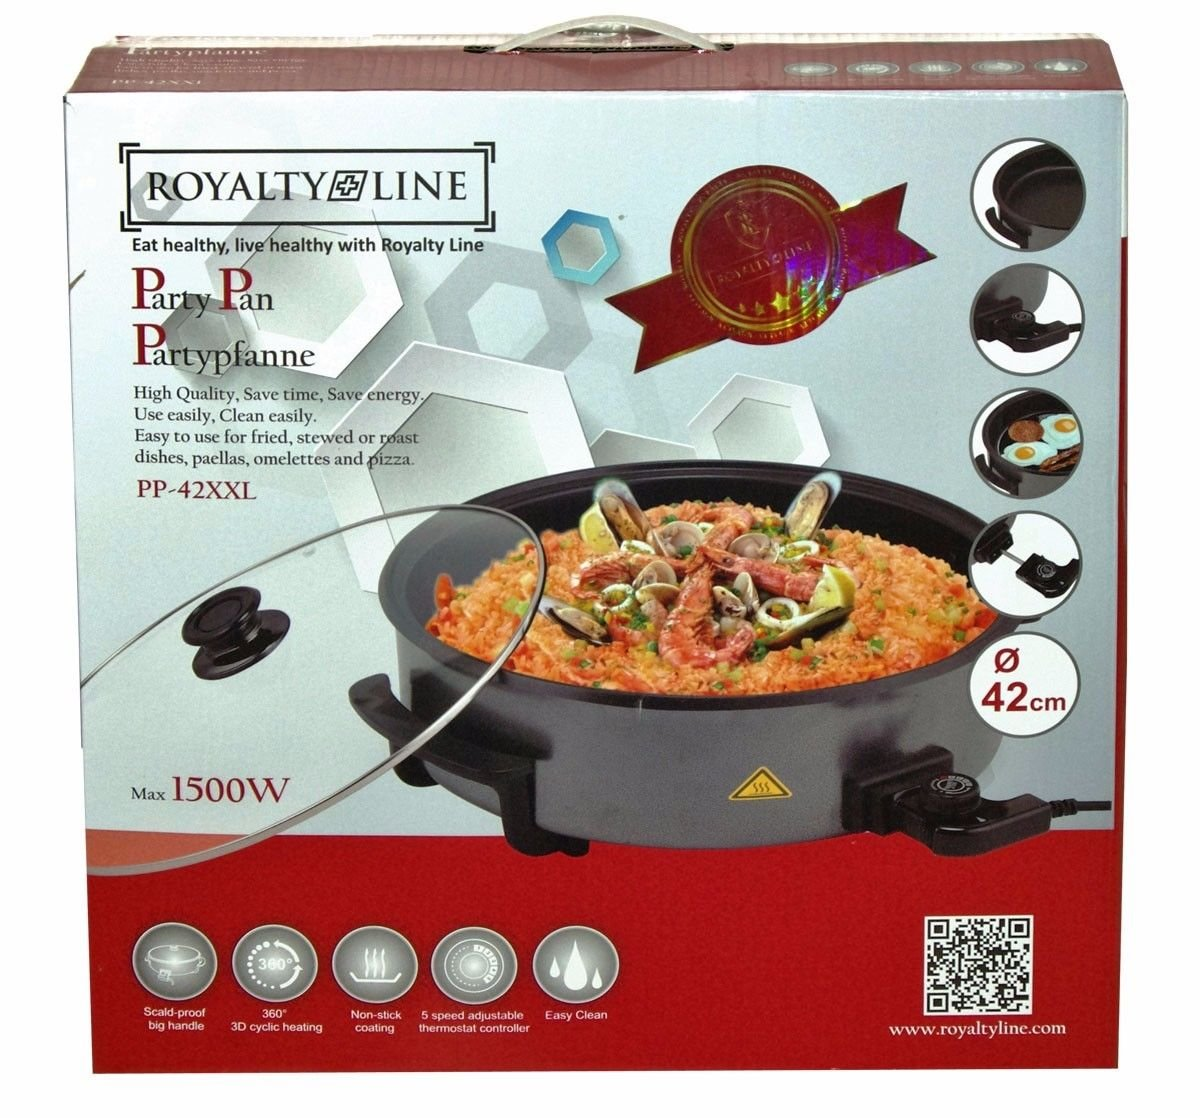 ROYALTY LINE party padella Pizza pan 42 cm PP 42xxl OVP martello grande Top qualità!